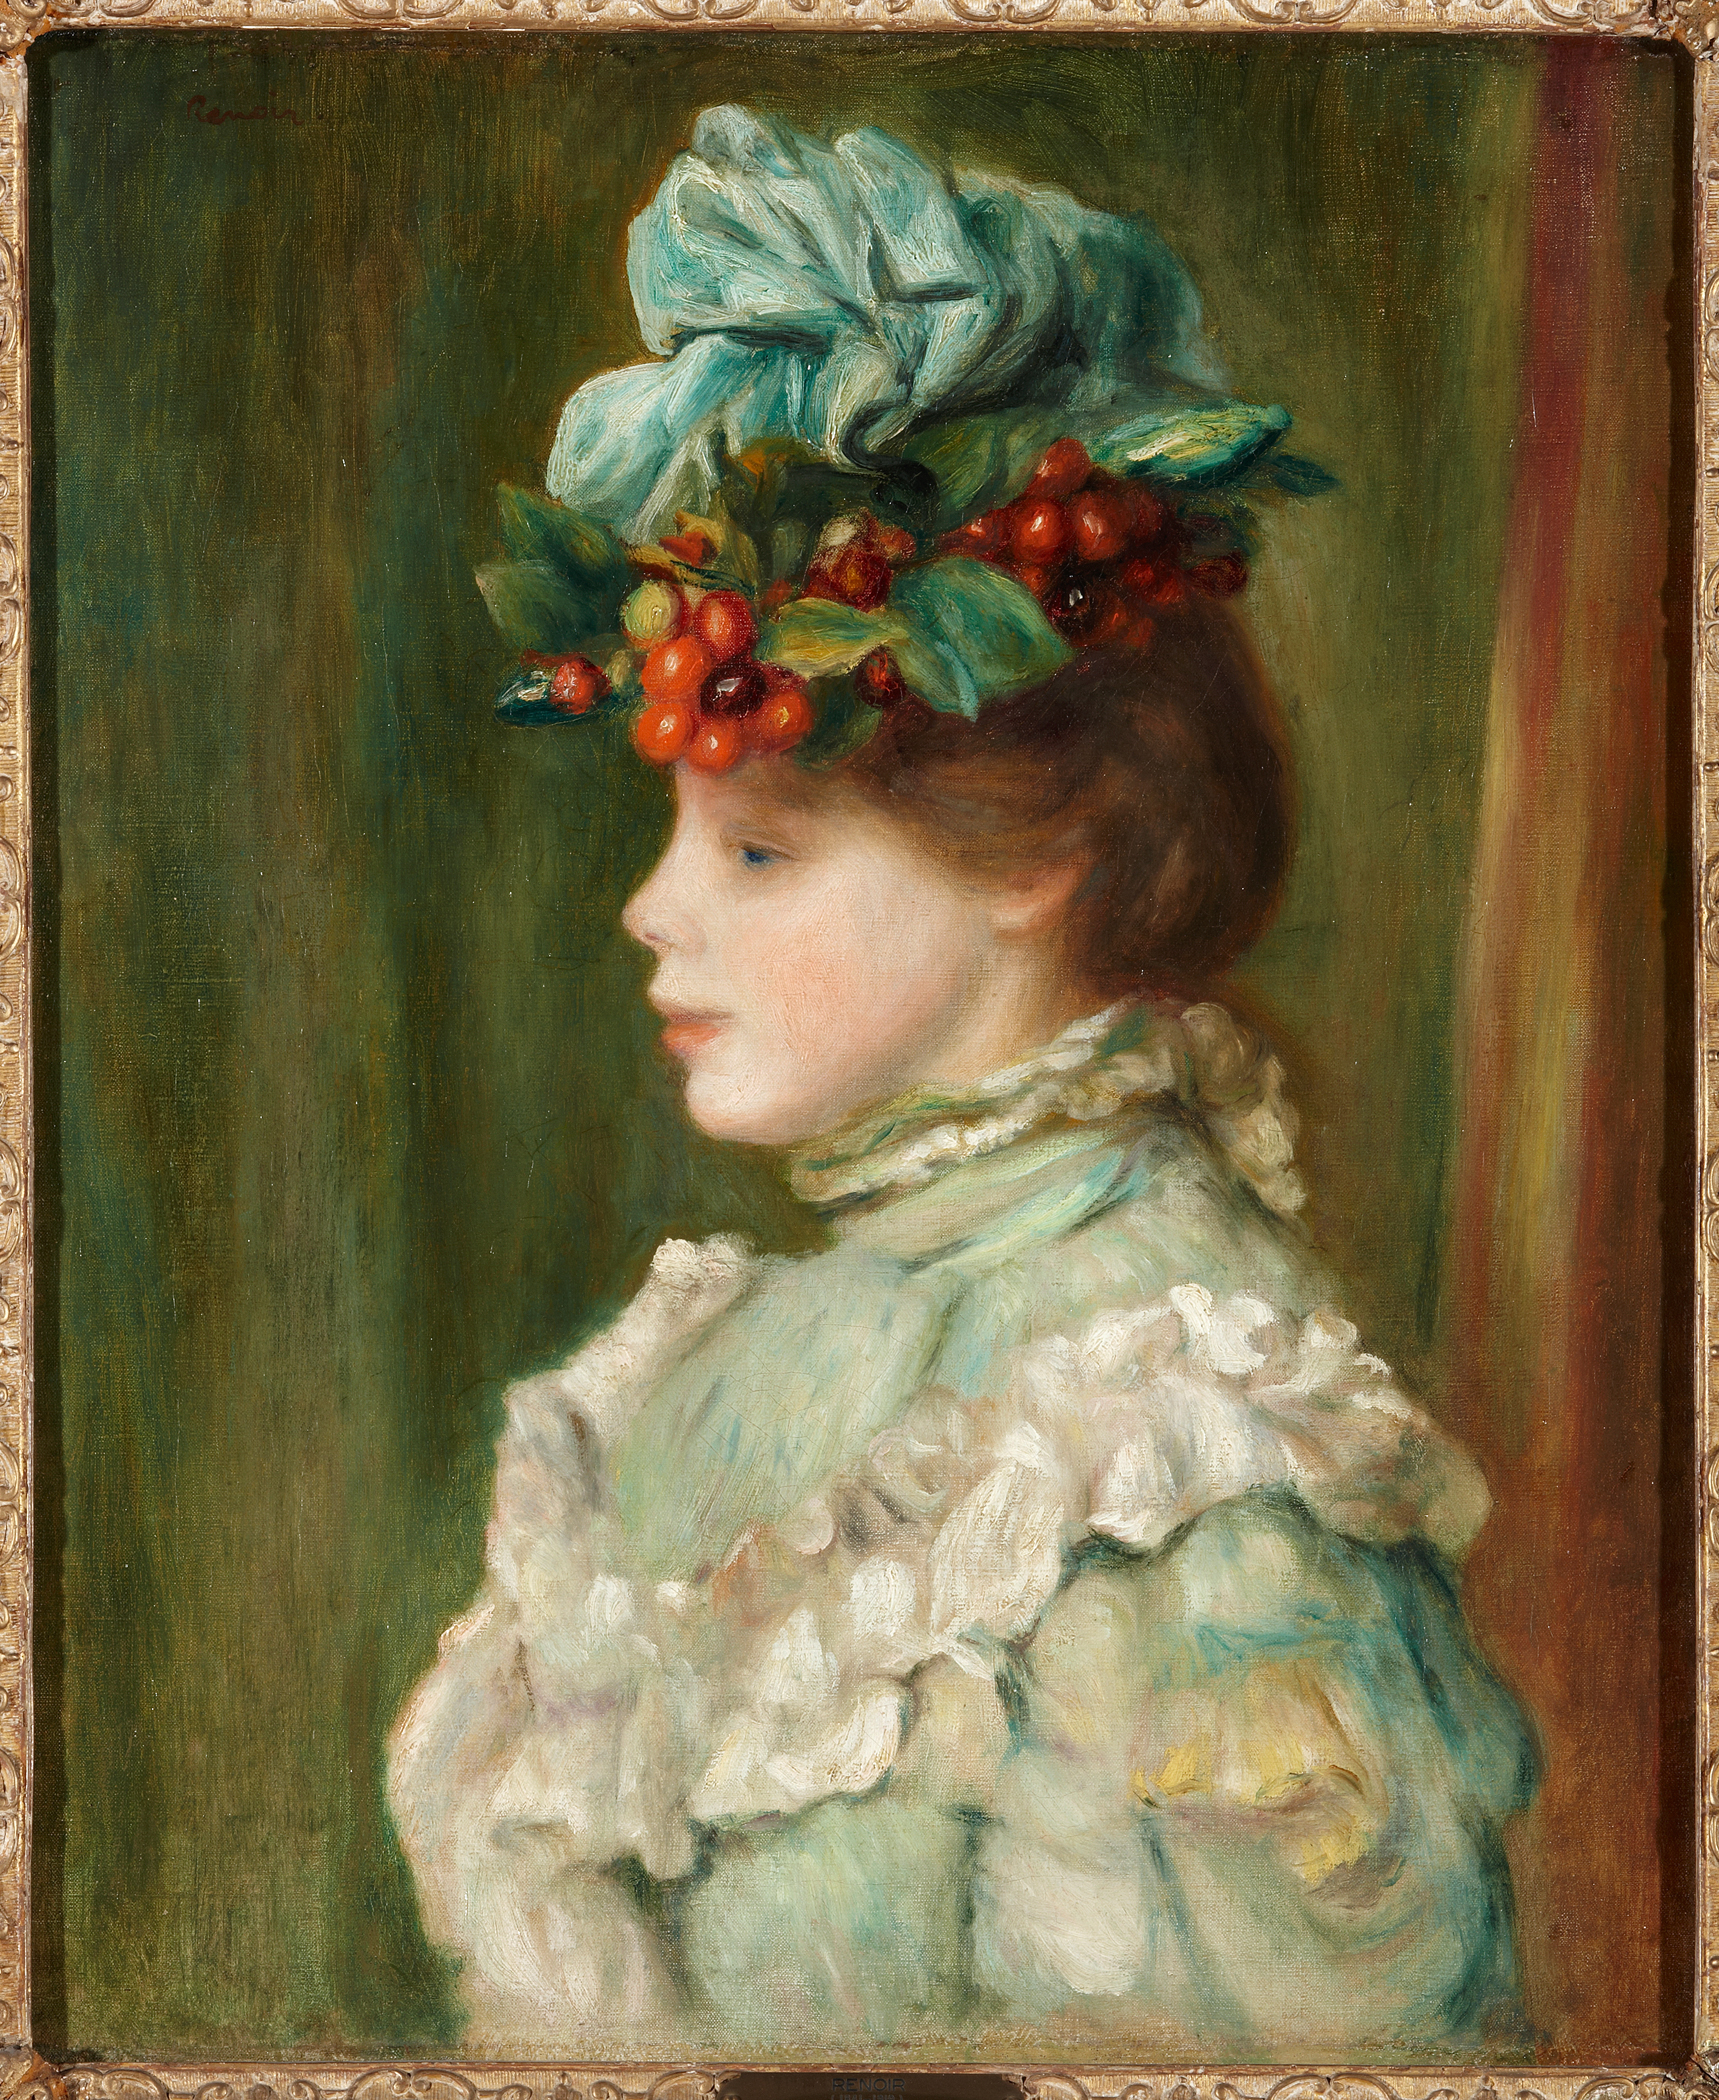 Pierre Auguste Renoir (French, 1841-1919), Girl with Hat with Cherries, 1880. Oil on canvas. Colección Duques de Alba, Palacio de Liria, Madrid.